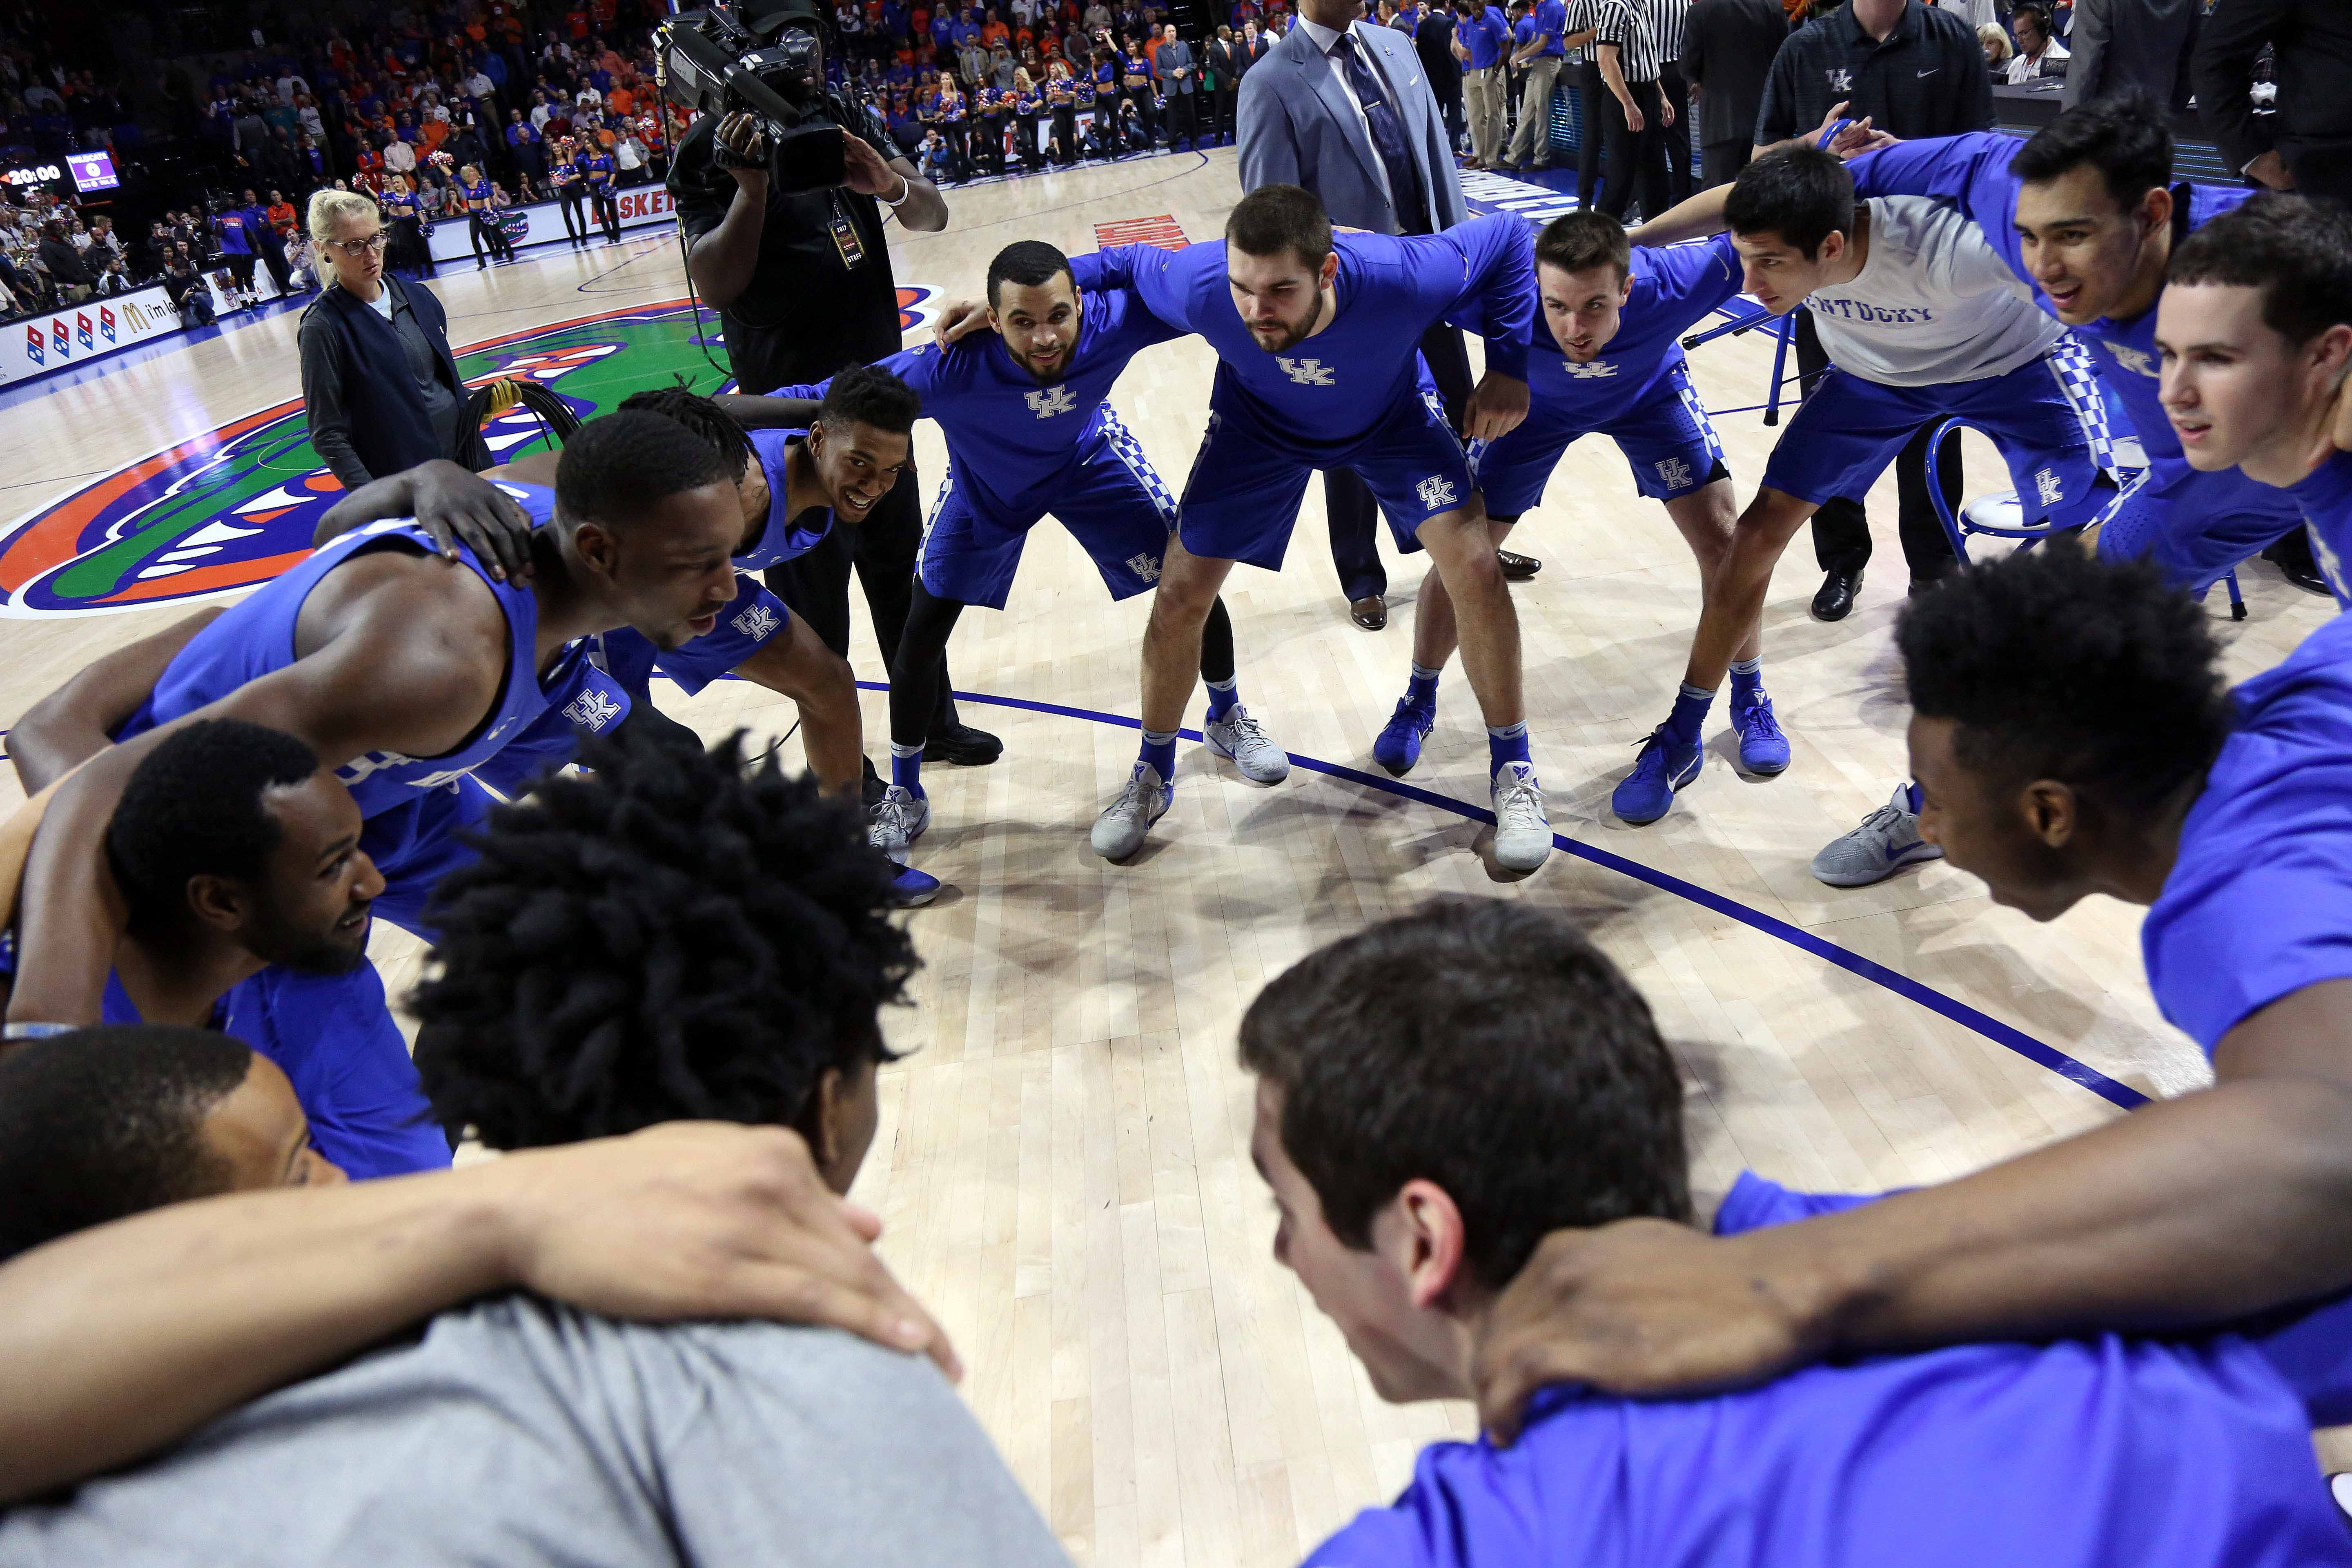 Kentucky Basketball What The Florida Win Means To The: Kentucky Basketball: How Big Blue Fans Watch Games